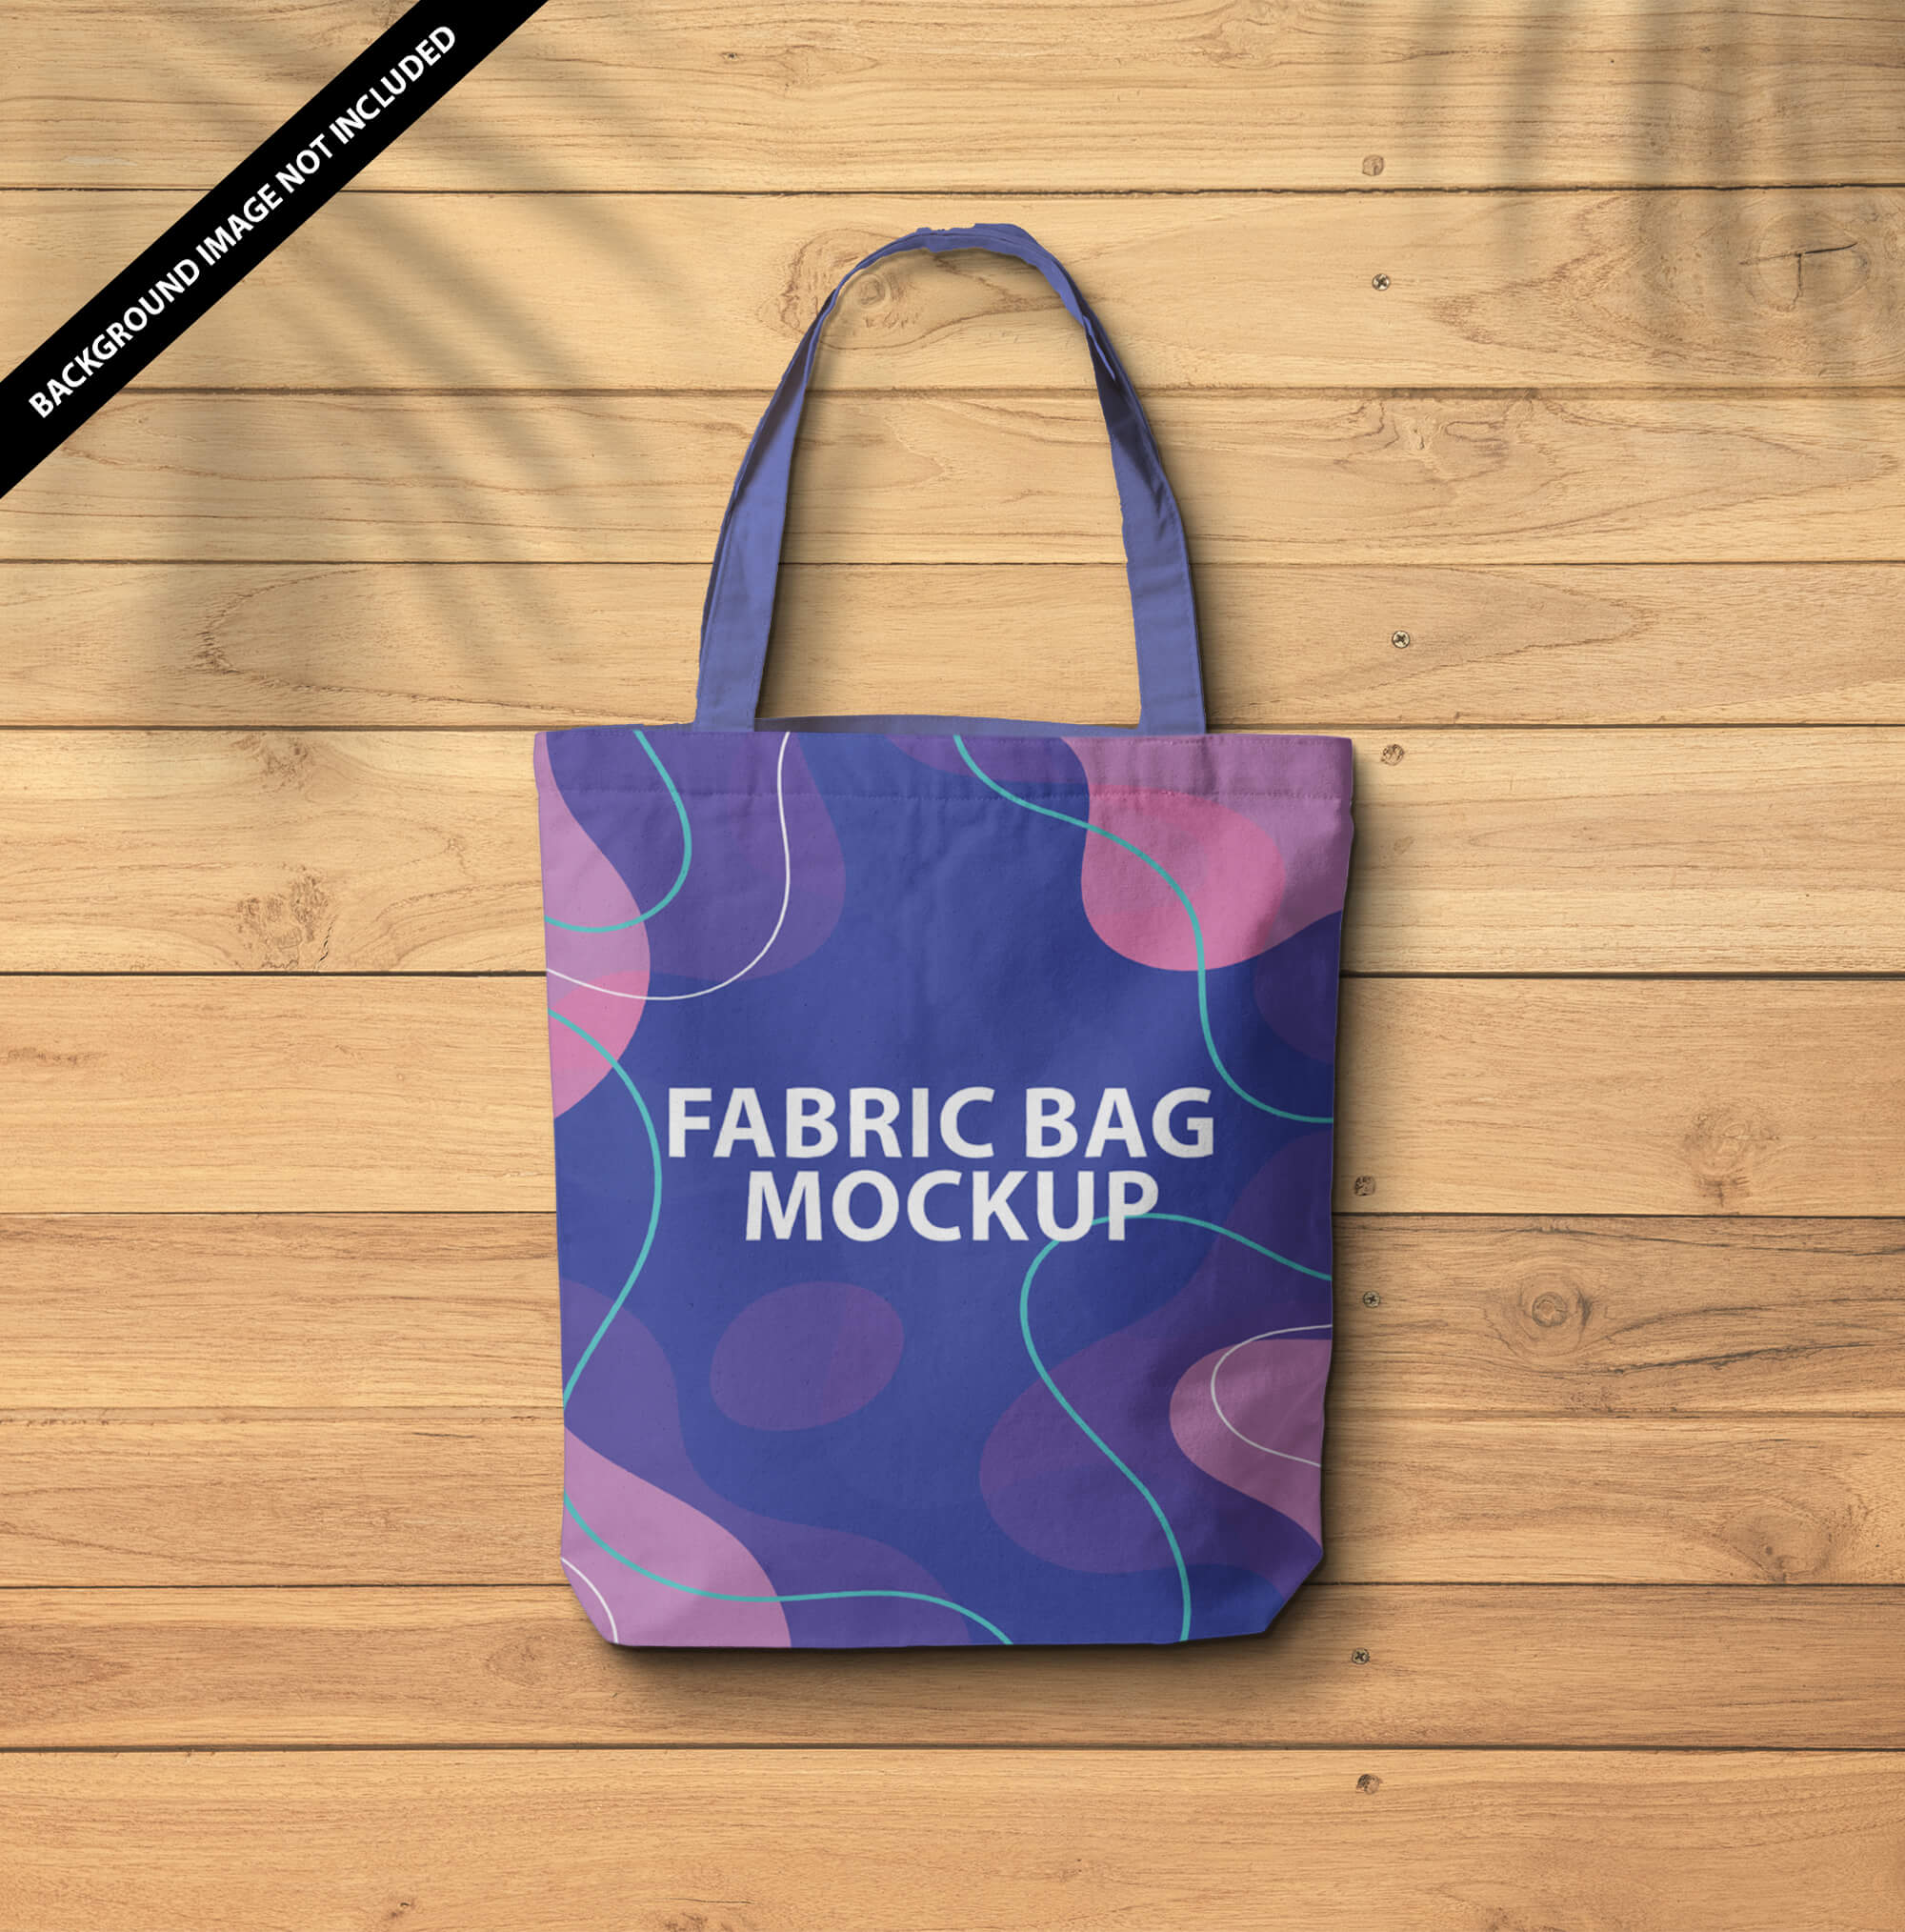 Free Fabric Bag Mockup PSD Template